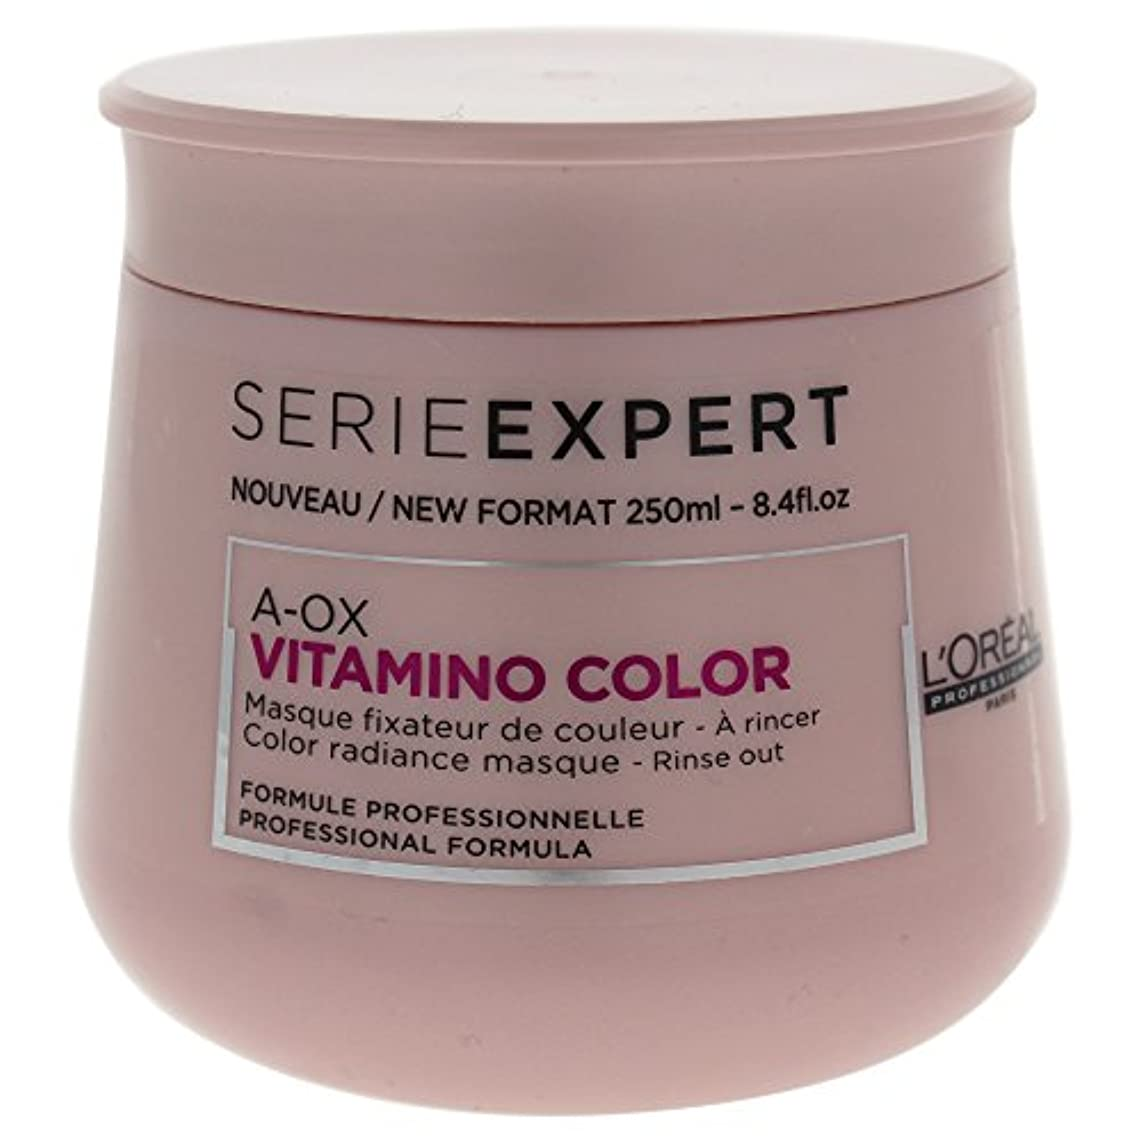 詩人発表台無しにL'Oreal Serie Expert A-OX VITAMINO COLOR Color Radiance Masque 250 ml [並行輸入品]